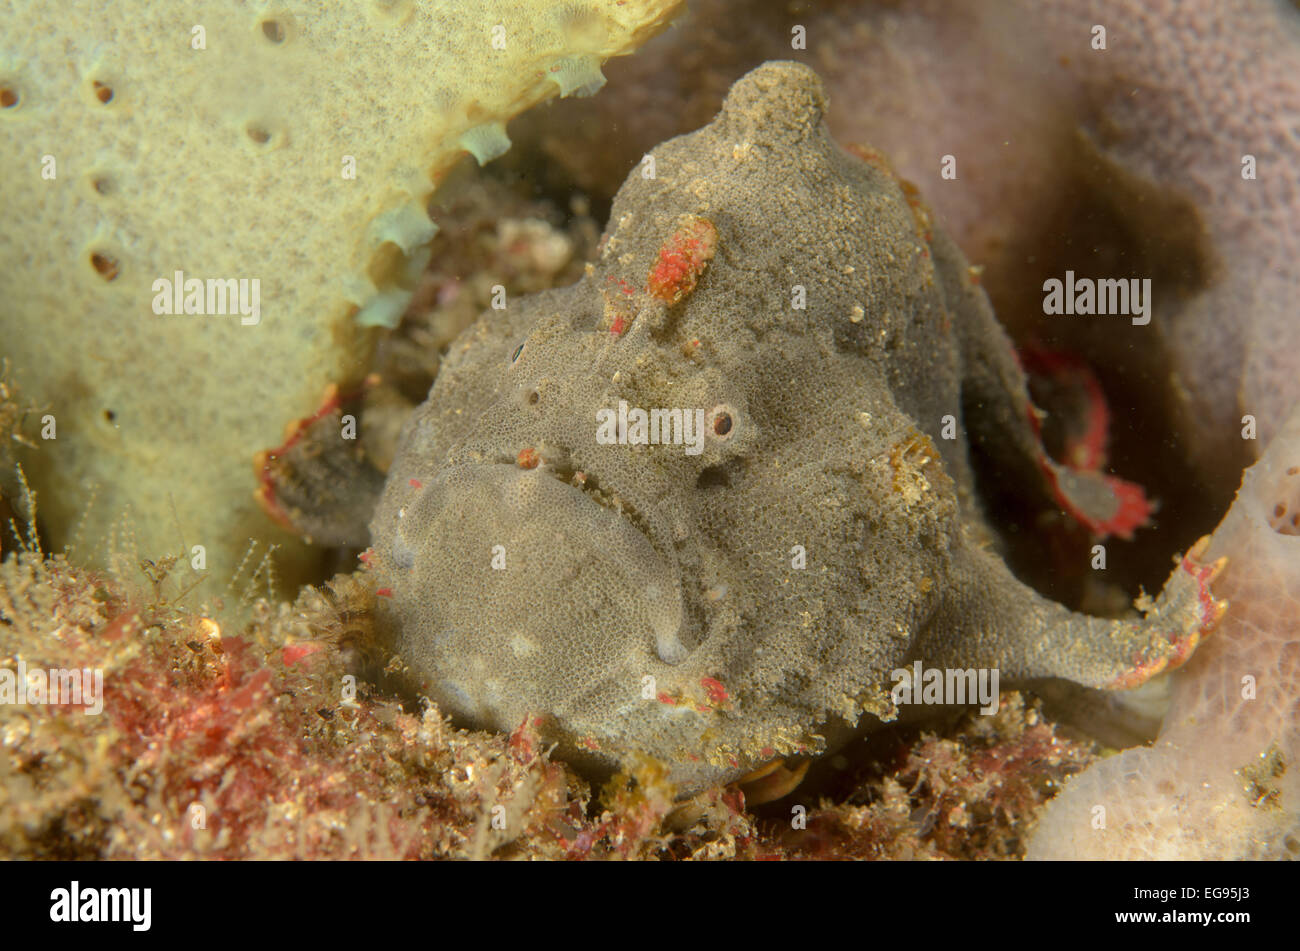 Red-fingered anglerfish, Porophryne erythrodactylus, at Kurnell, New South Wales, Australia. Stock Photo